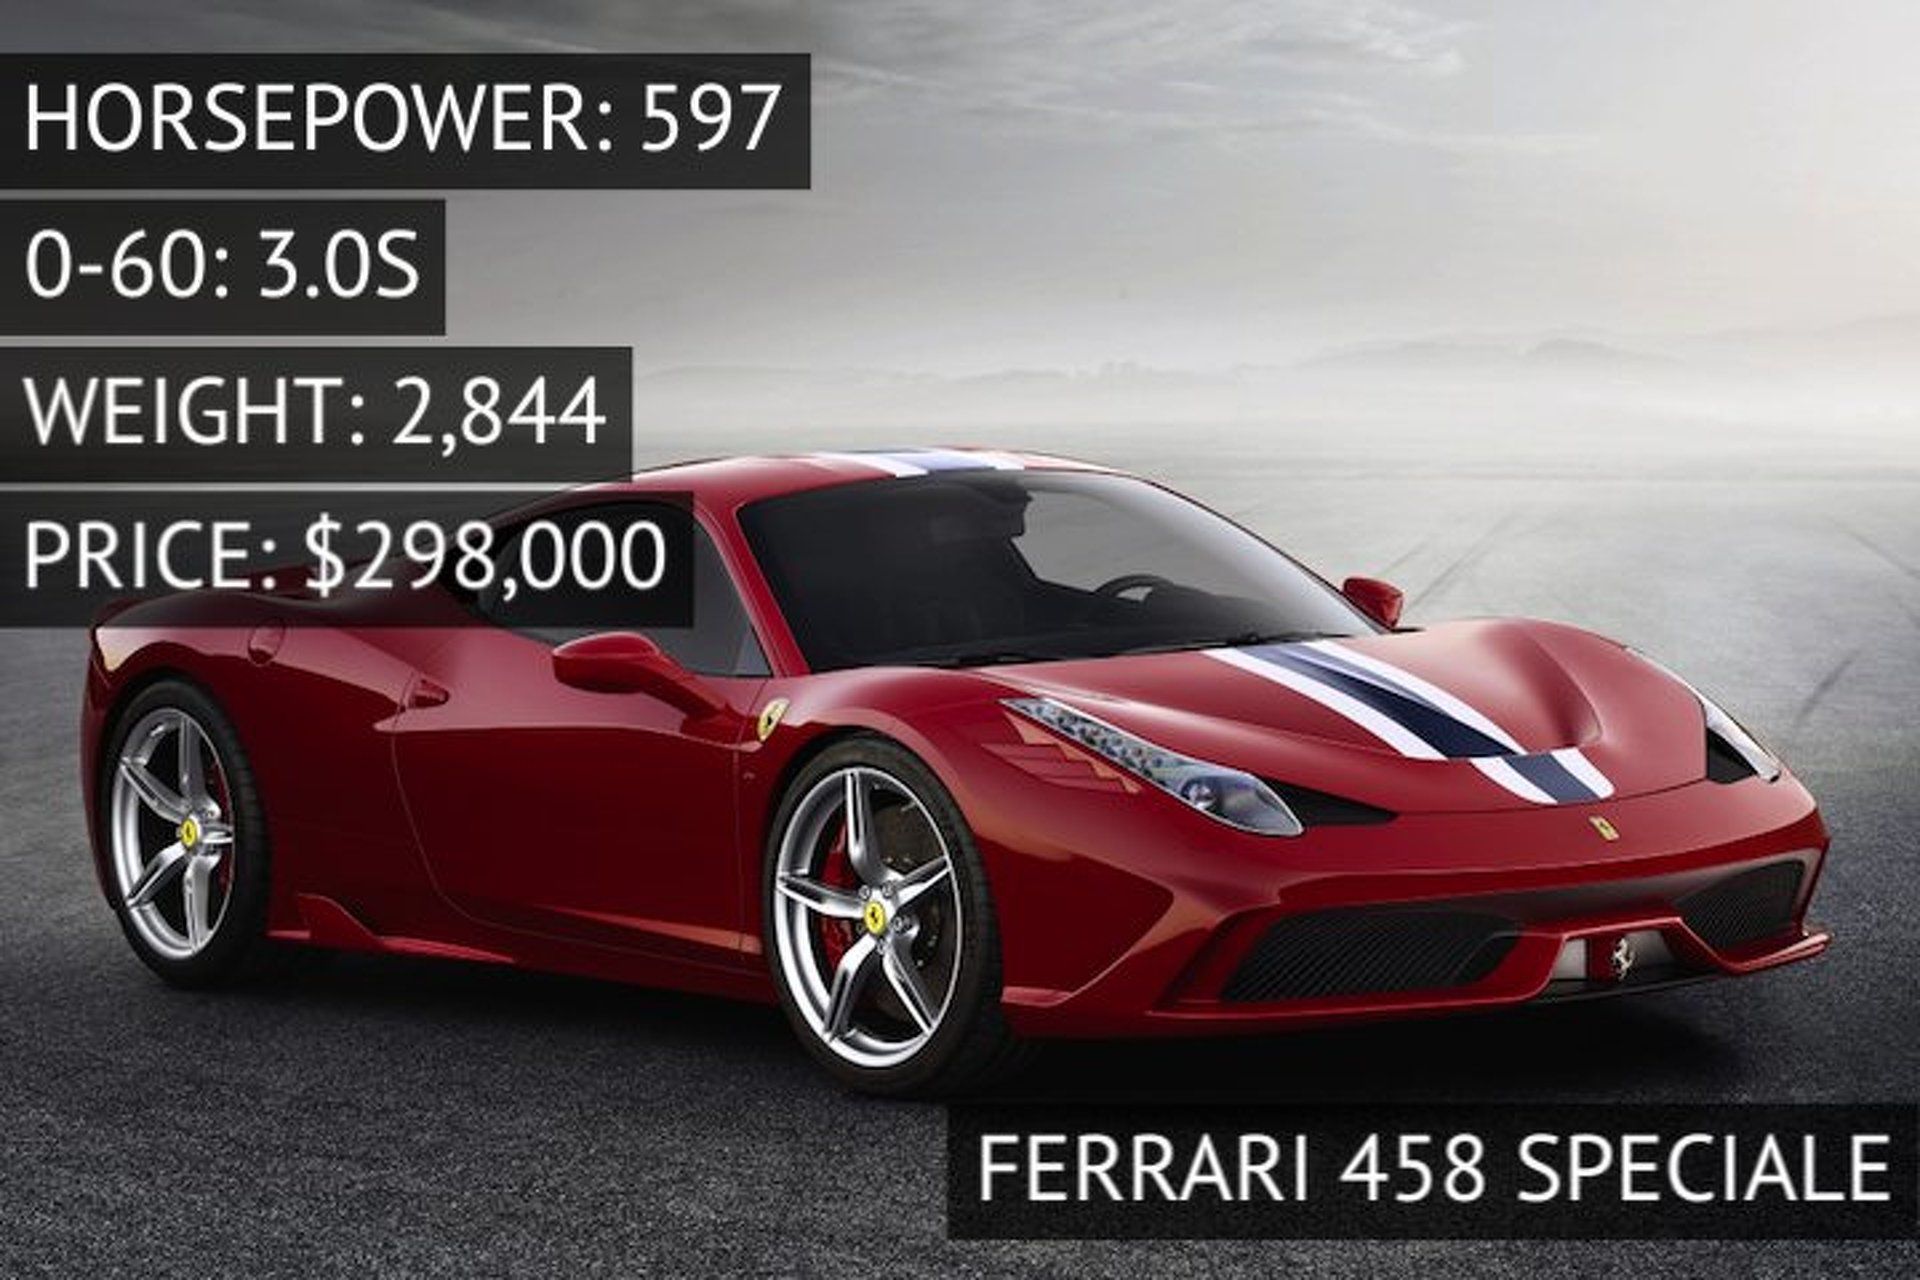 McLaren 650S vs Ferrari 458 Speciale: Which Would You Choose? [Poll]